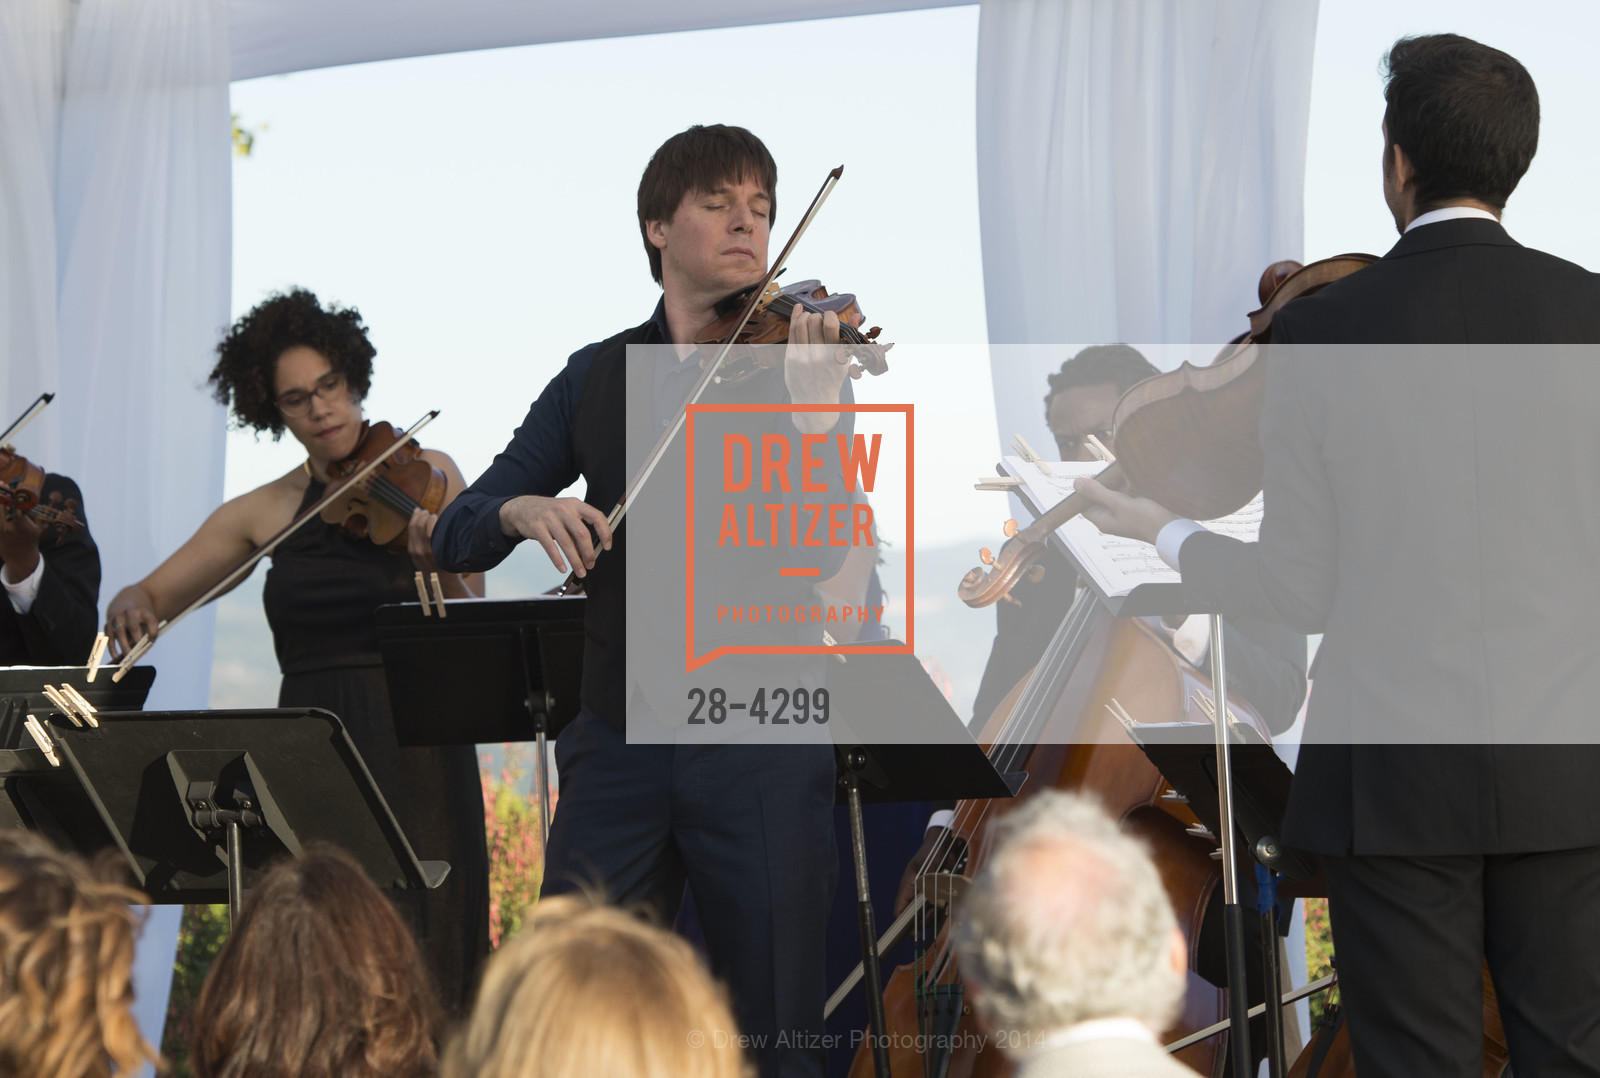 Performance By Joshua Bell, Photo #28-4299